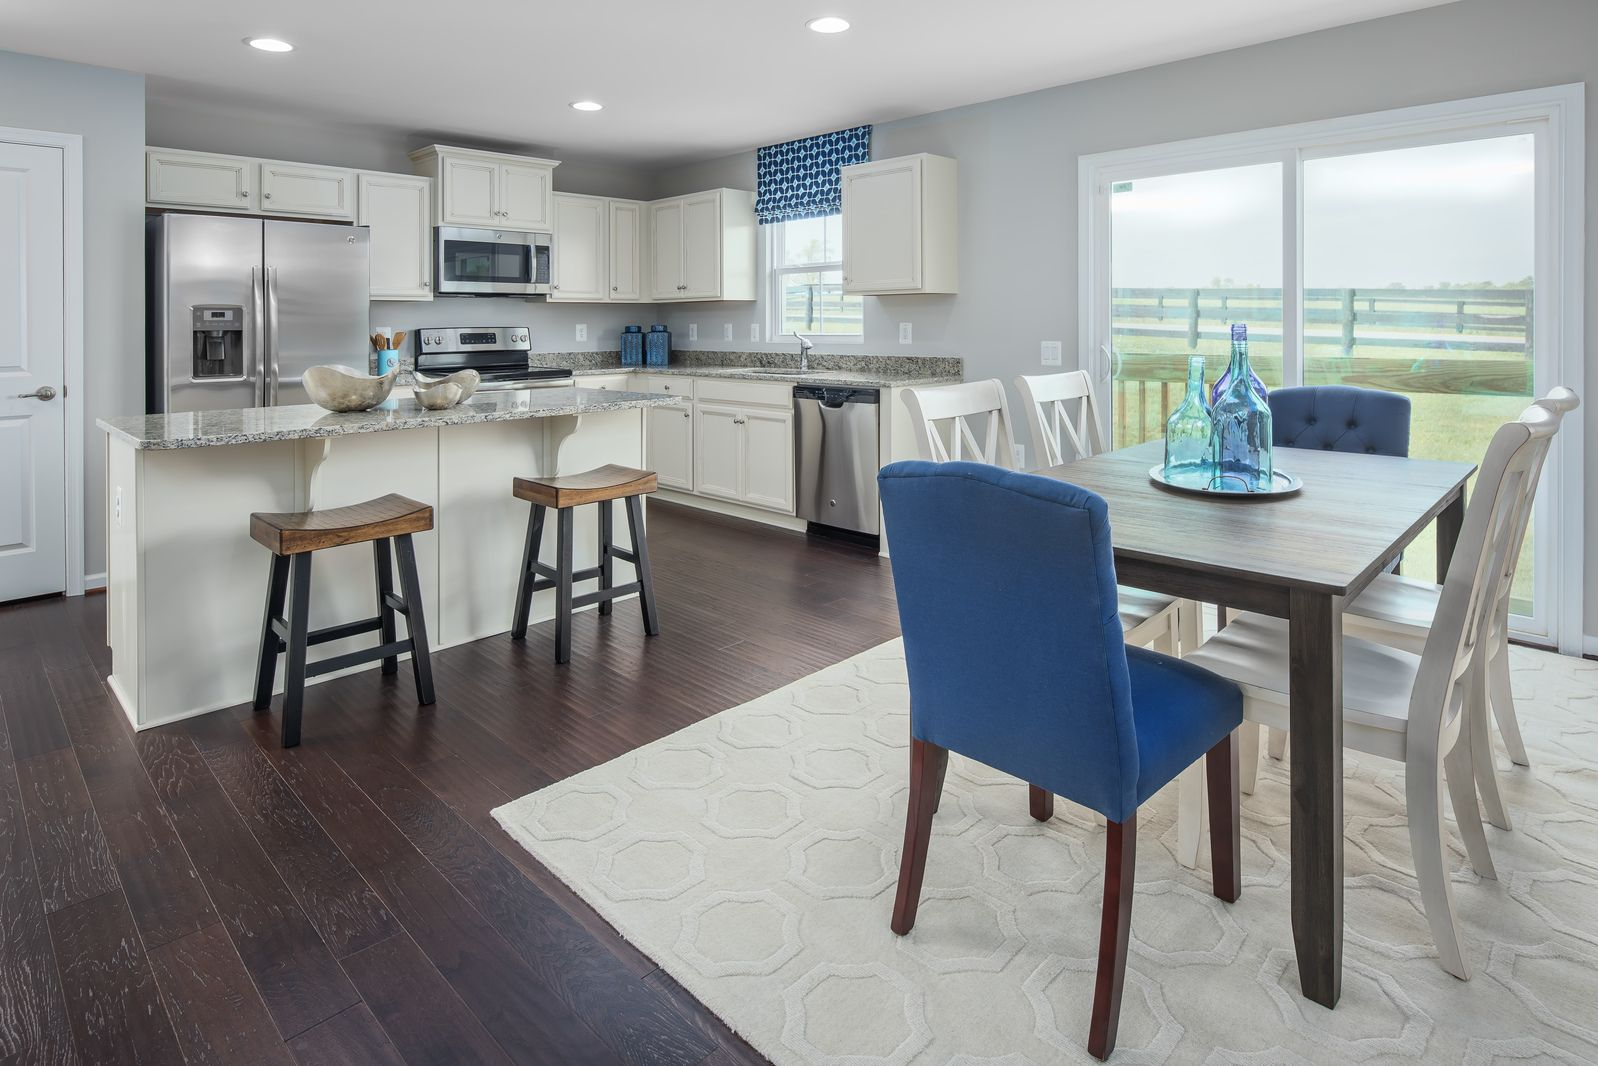 ... Spacious Kitchens:The Living Room, Dining And Kitchen All Share One  Big, Happy